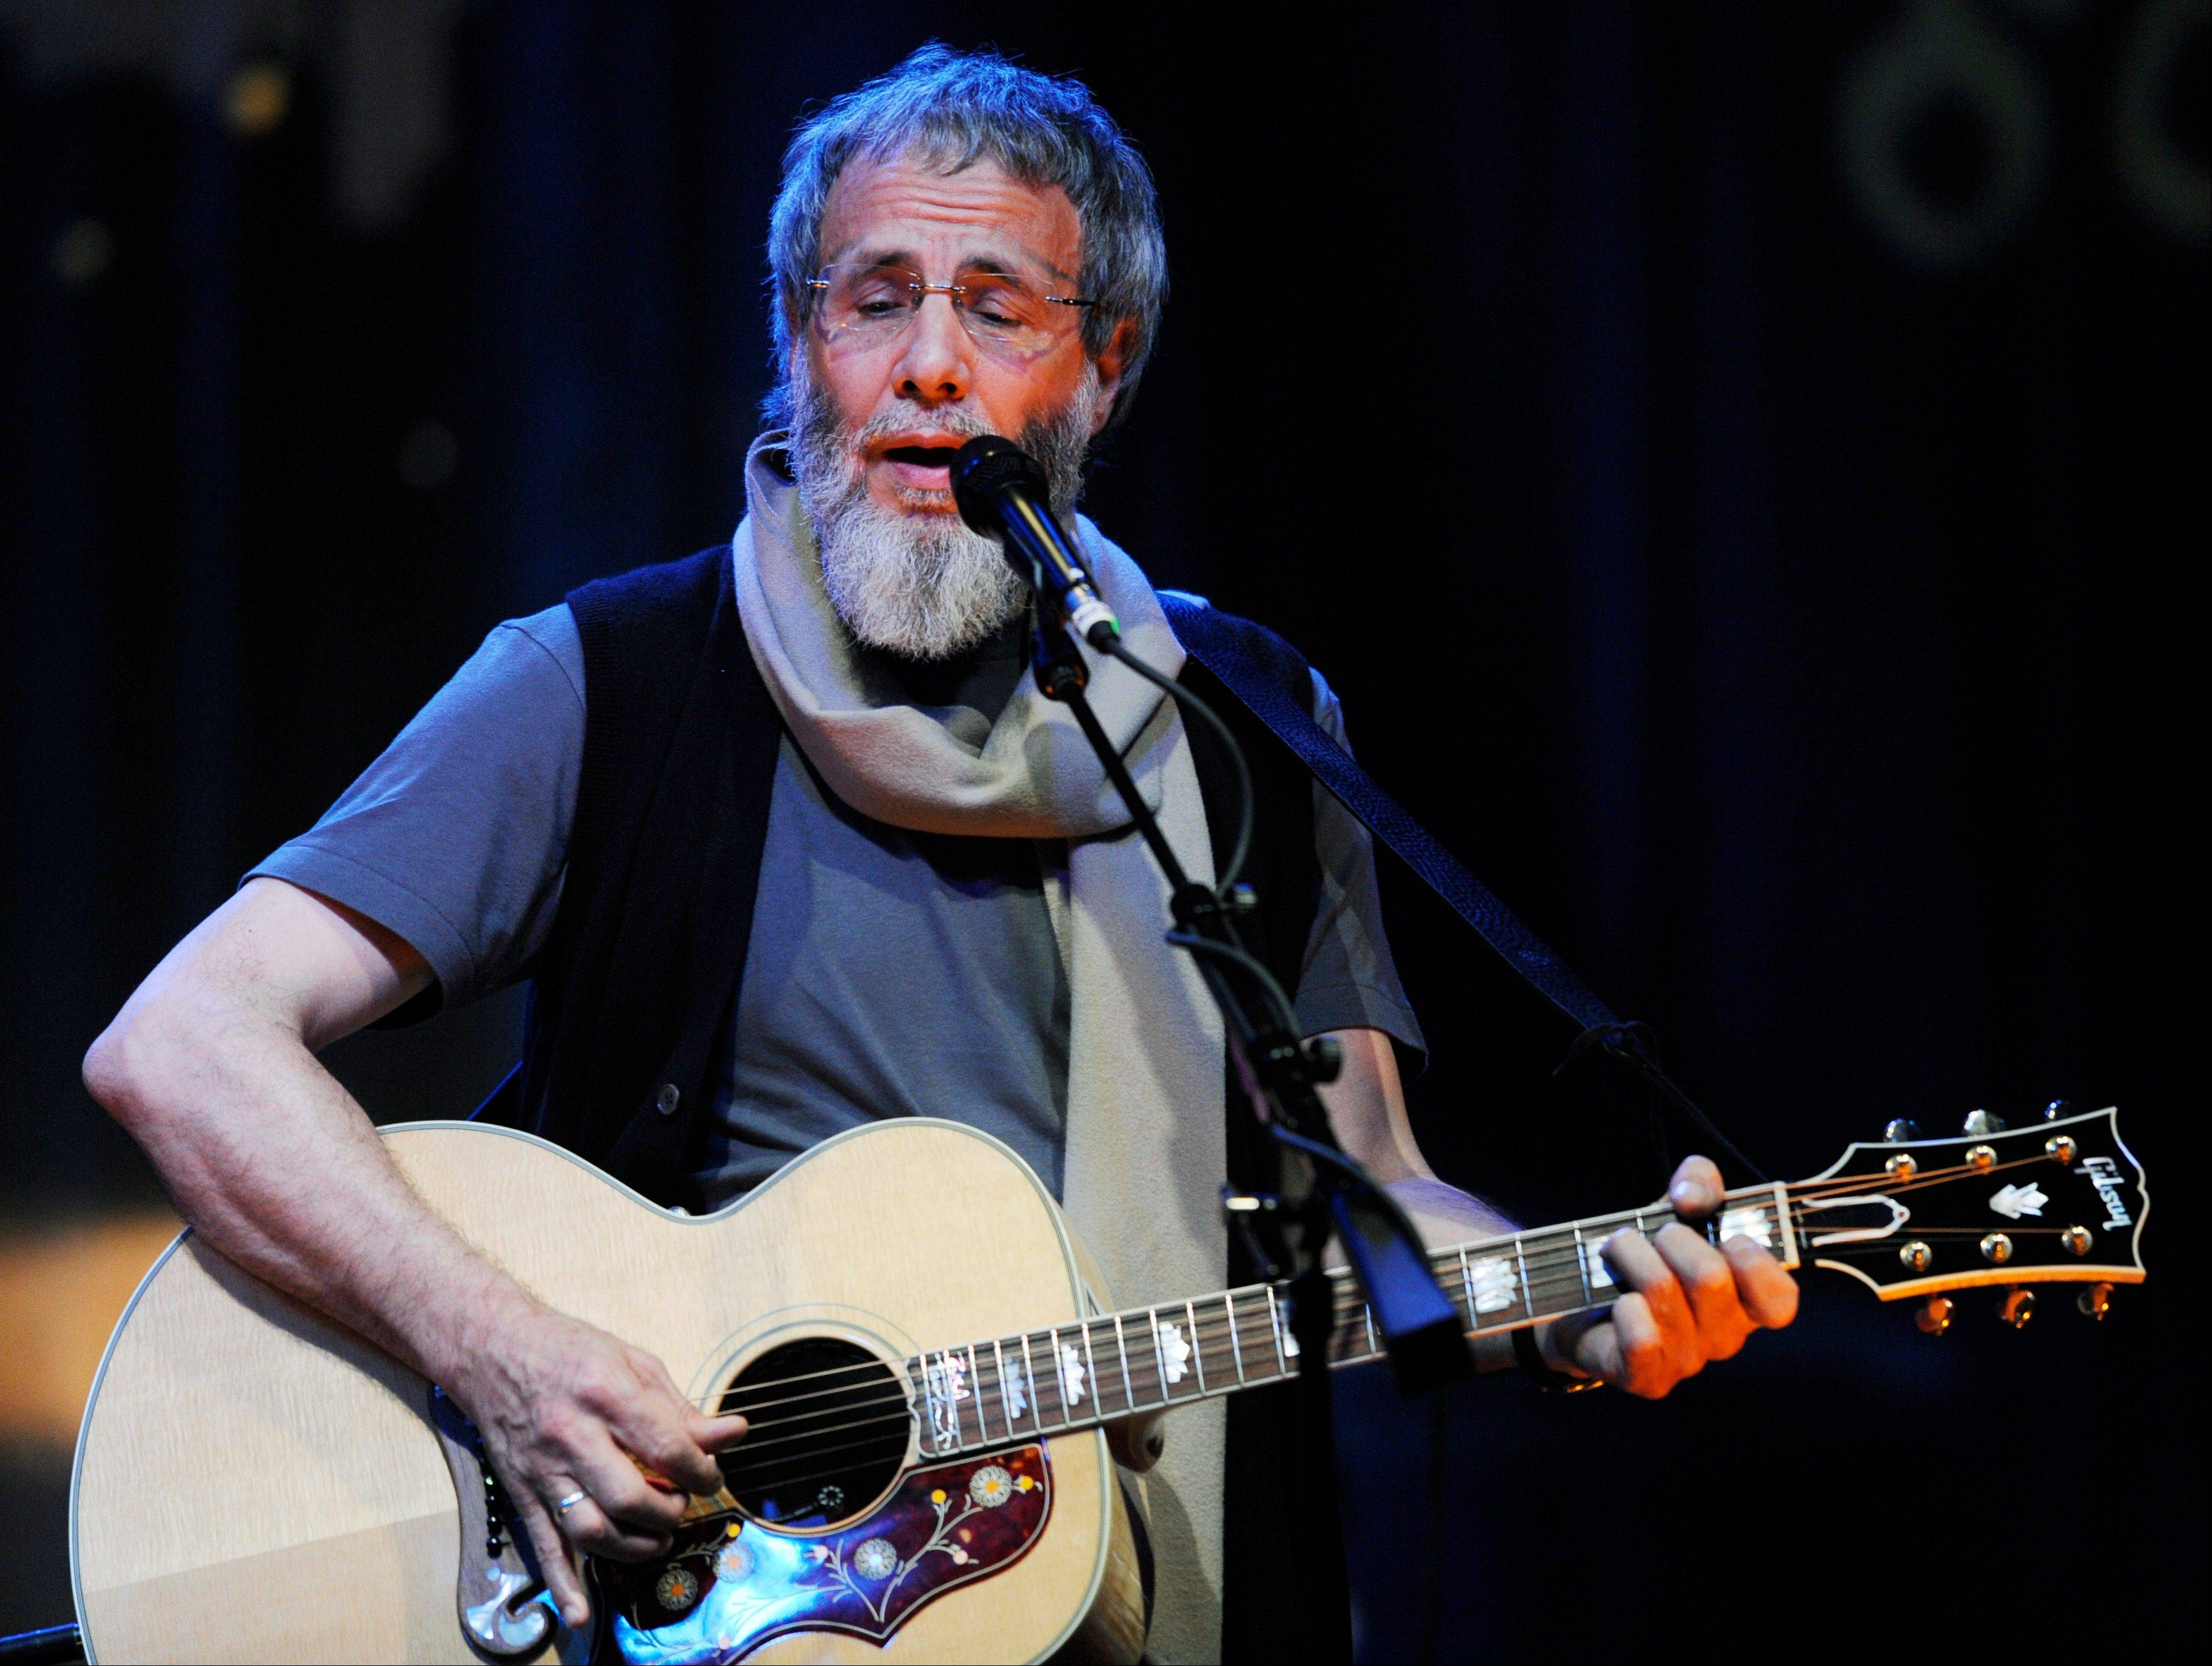 Yusuf Islam, previously Cat Stevens, during a sound check for his concert at the El Rey Theater in Los Angeles. Islam will be inducted into the 2014 Rock and Roll Hall of Fame on April 10 at the Barclays Center in New York.